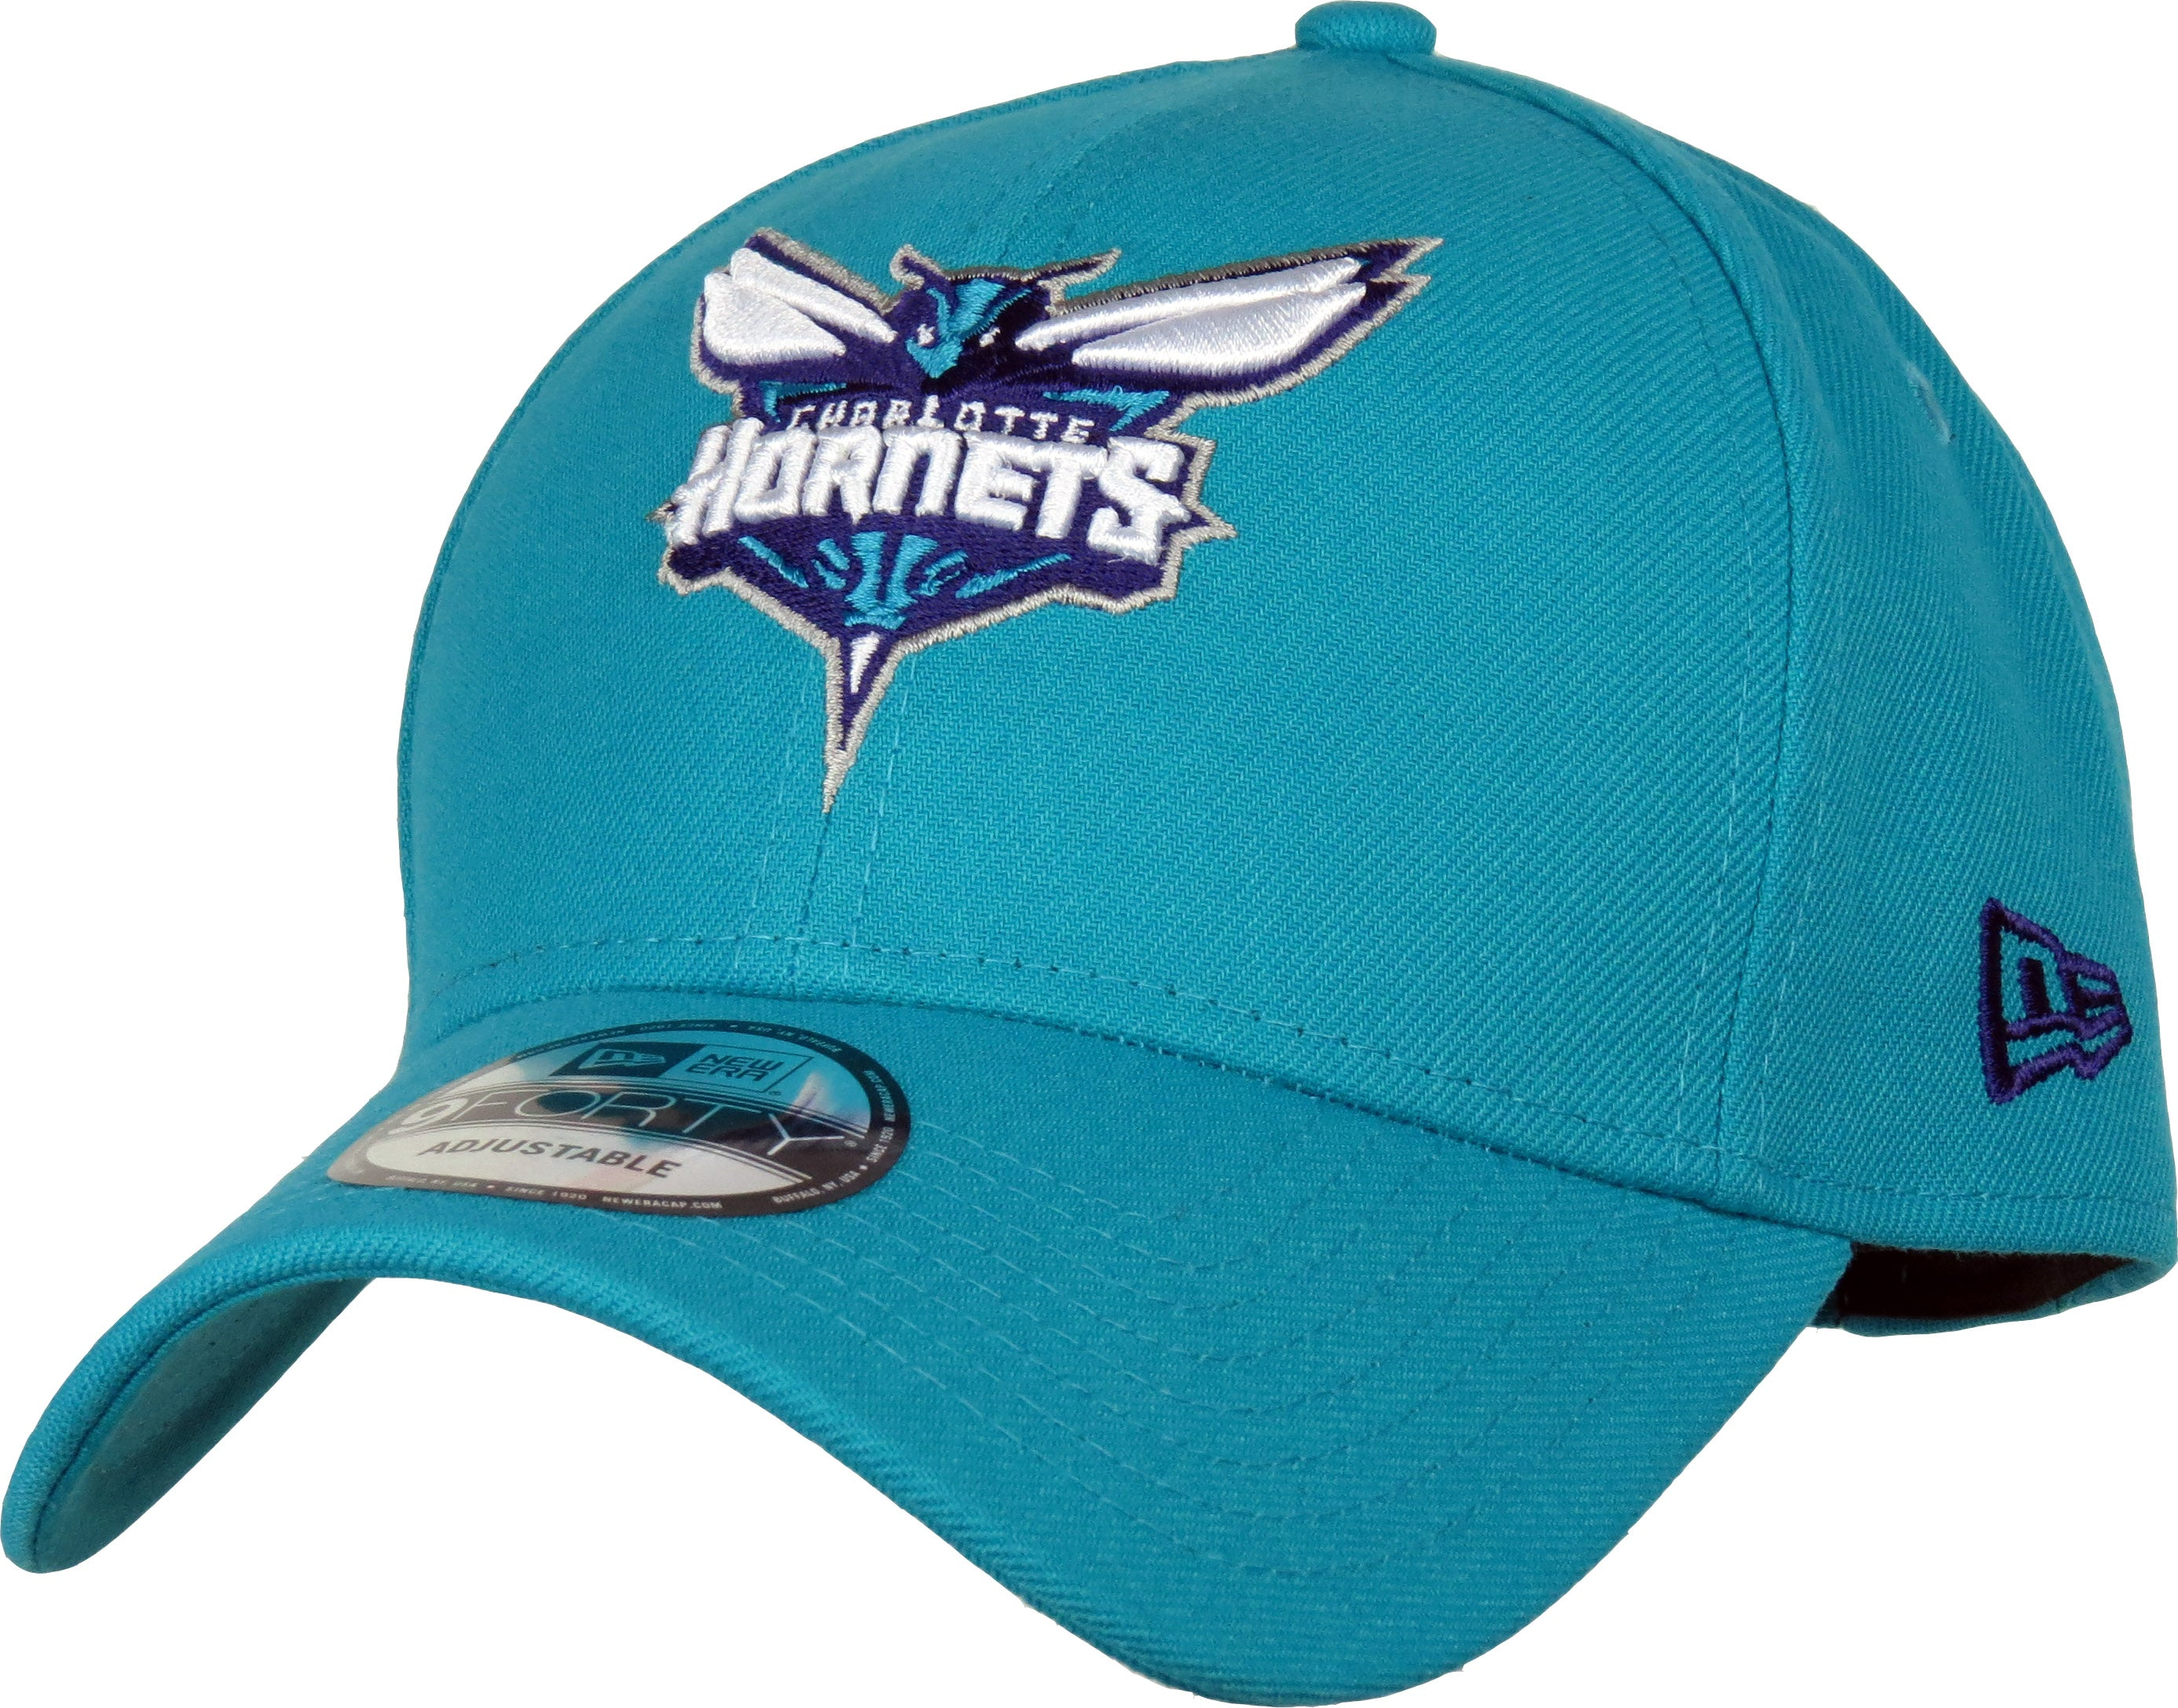 pick up online here best prices Charlotte Hornets New Era 940 The League NBA Team Cap – lovemycap